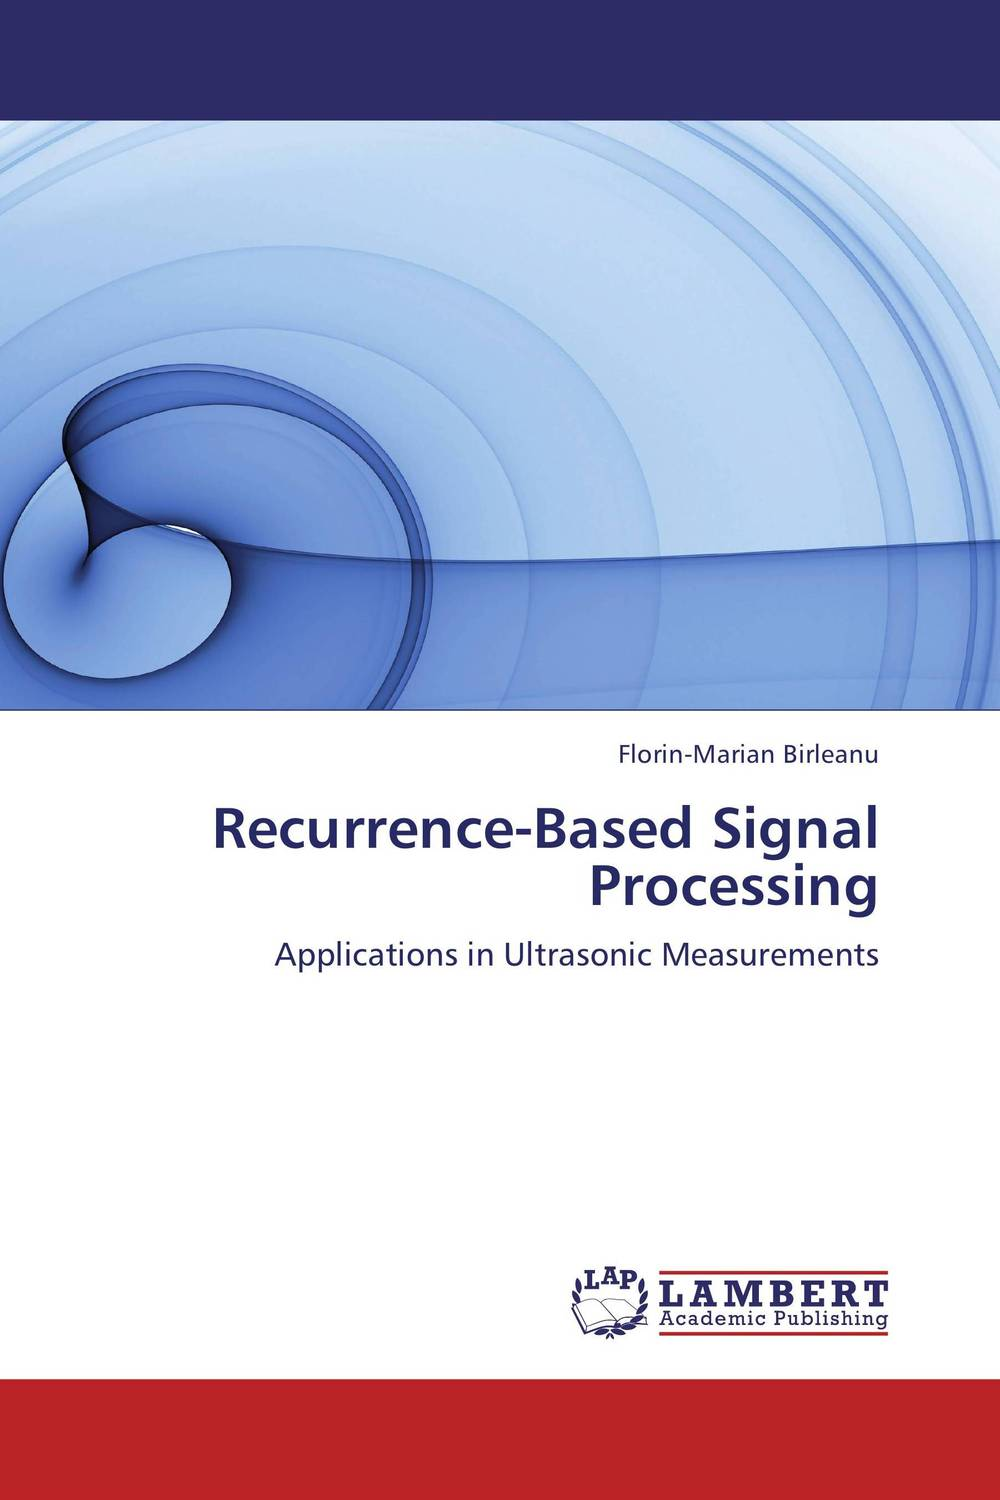 Recurrence-Based Signal Processing alexander lerch an introduction to audio content analysis applications in signal processing and music informatics